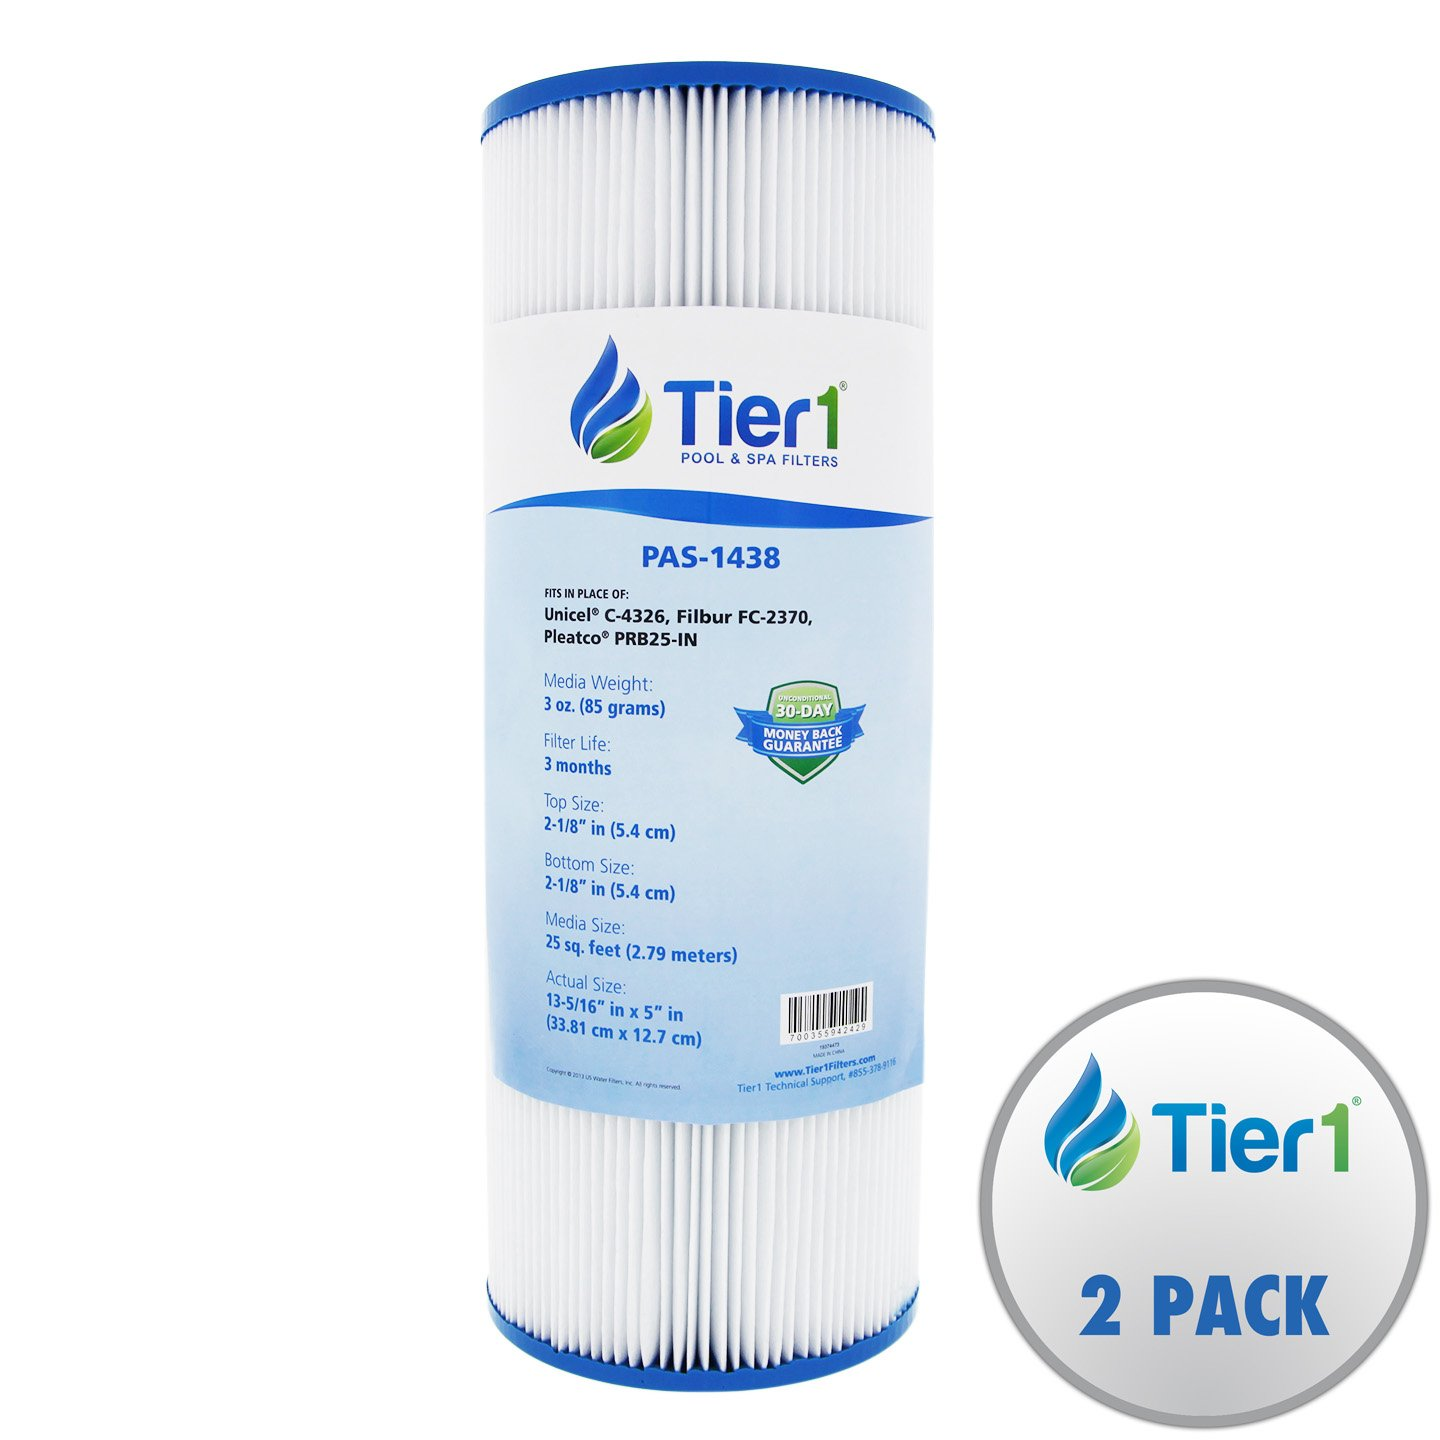 Tier1 Dynamic 17-2327, Pleatco PRB25-IN, 817-2500, R173429, Unicel C-4326, Filbur FC-2375 Comparable Replacement Spa Filter Cartridge (2-Pack)